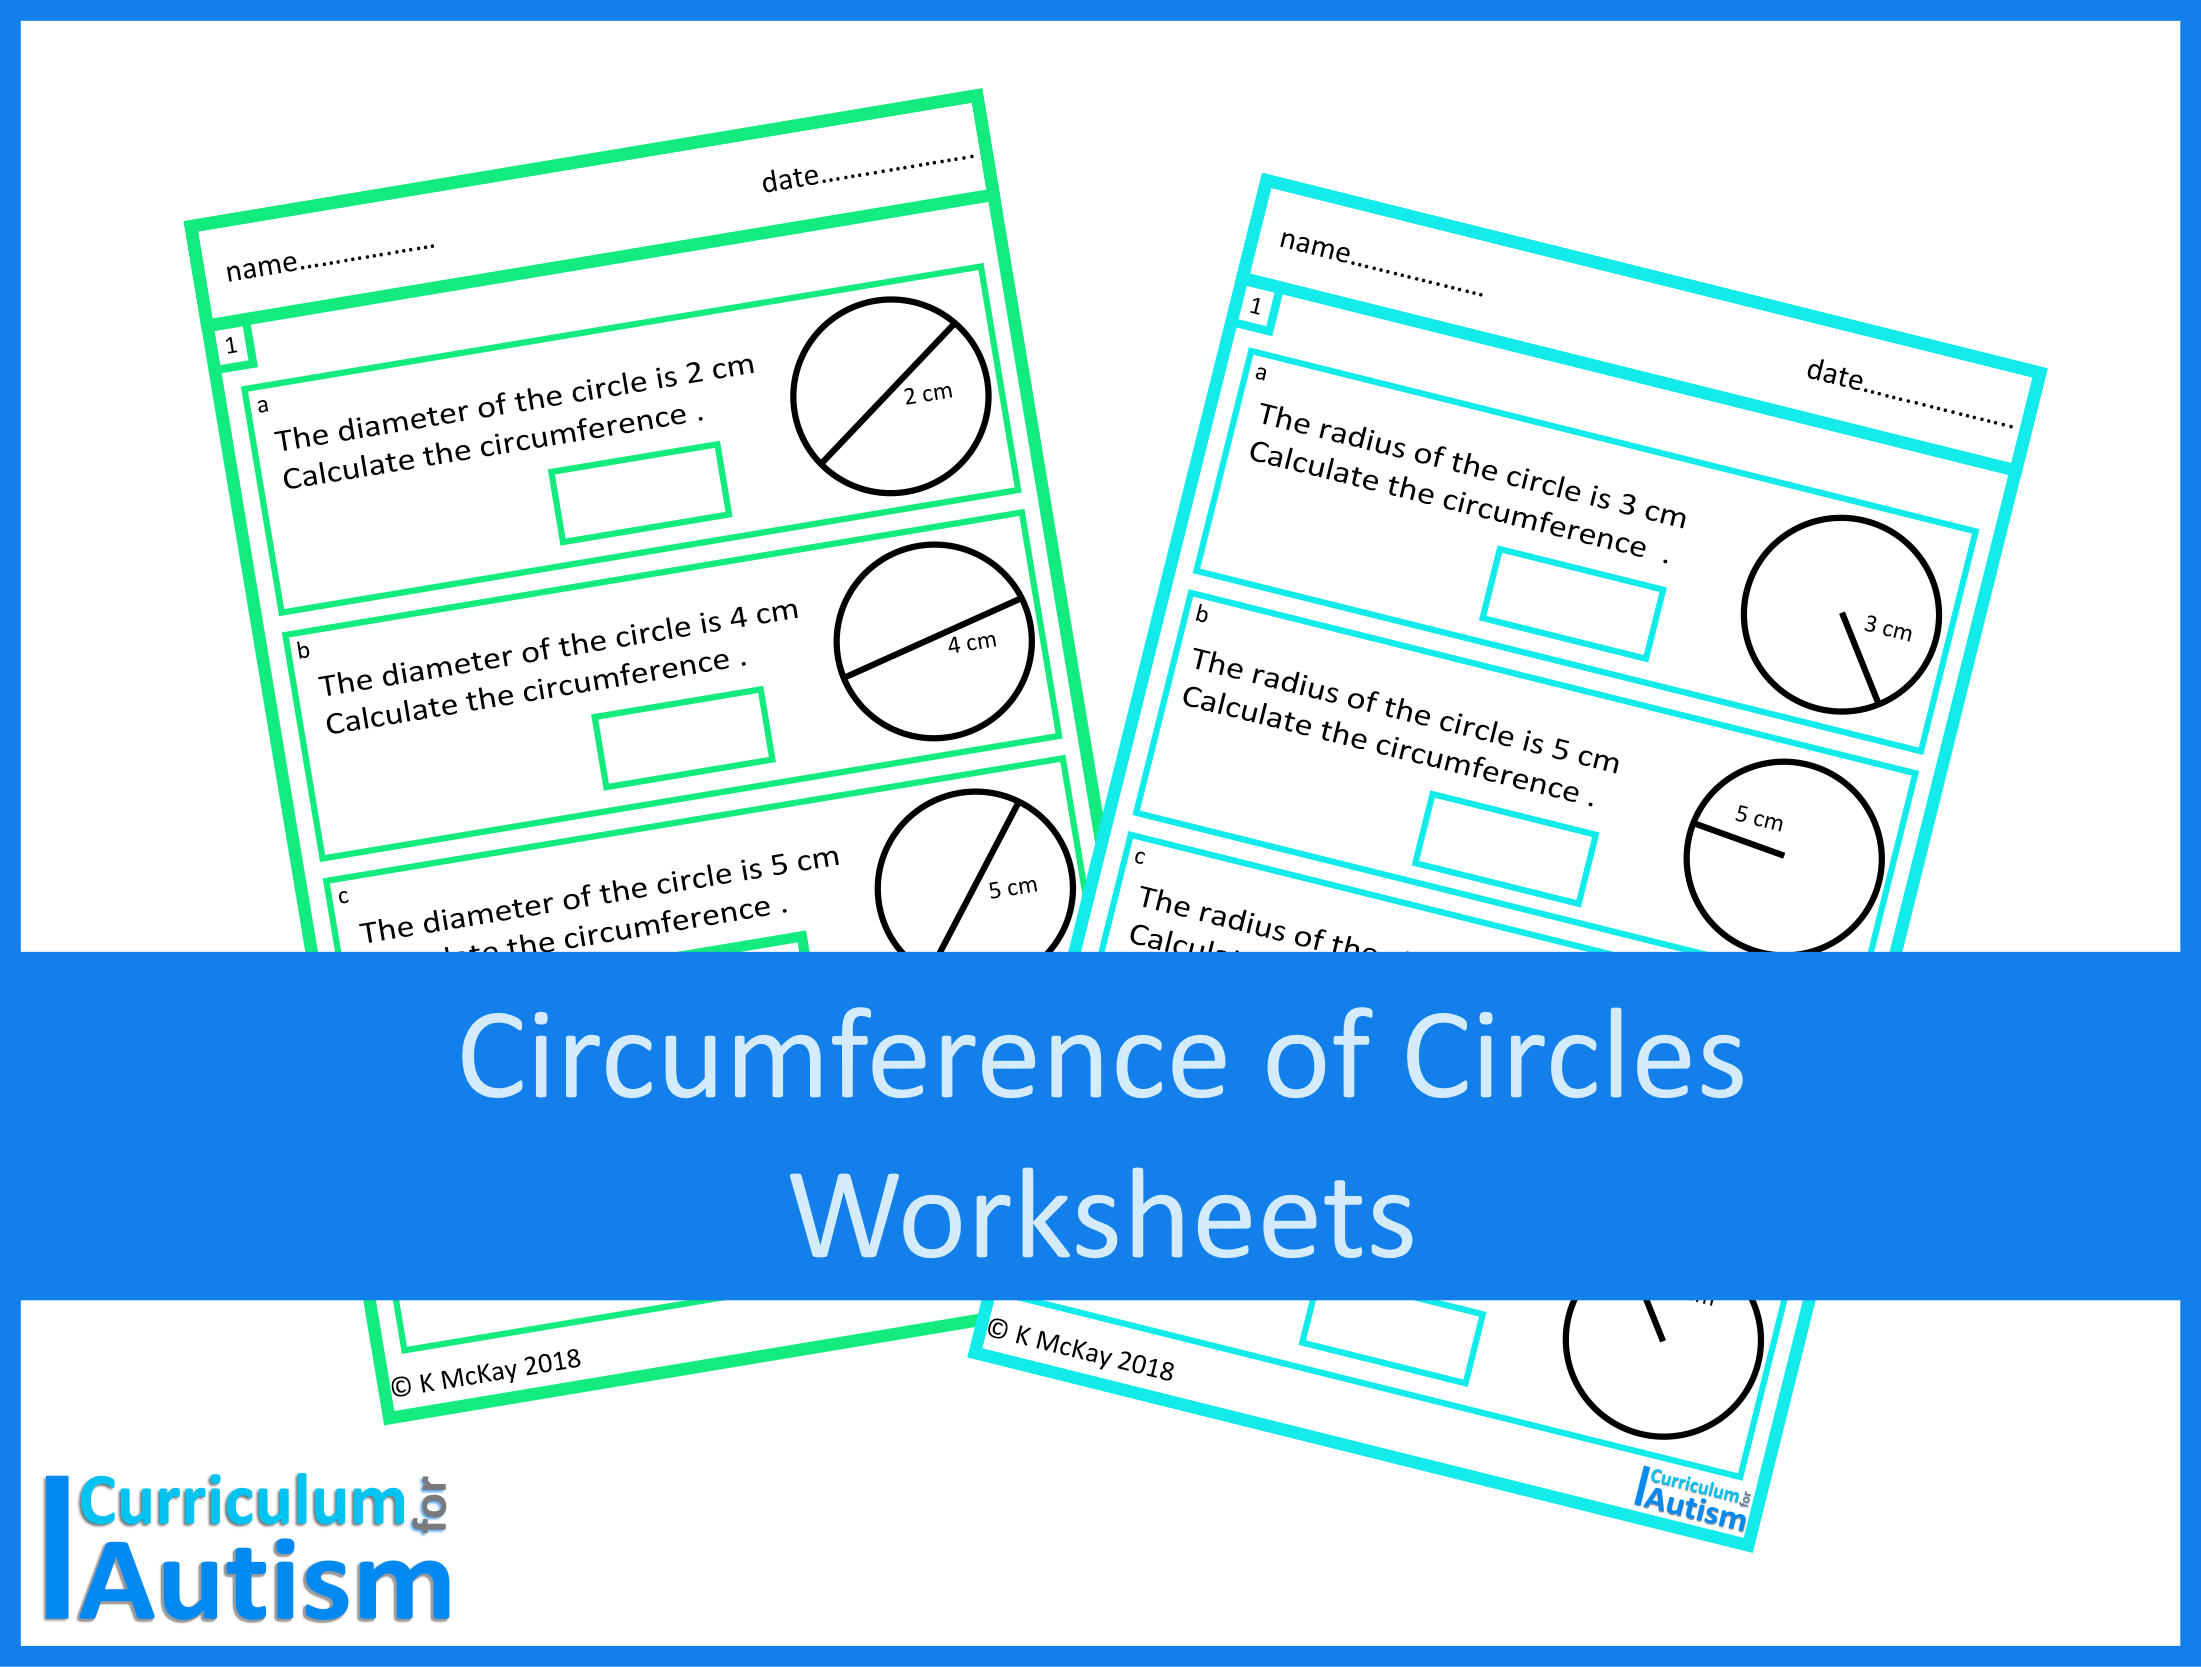 Calculating the Circumference of Circles Worksheets Digital Download